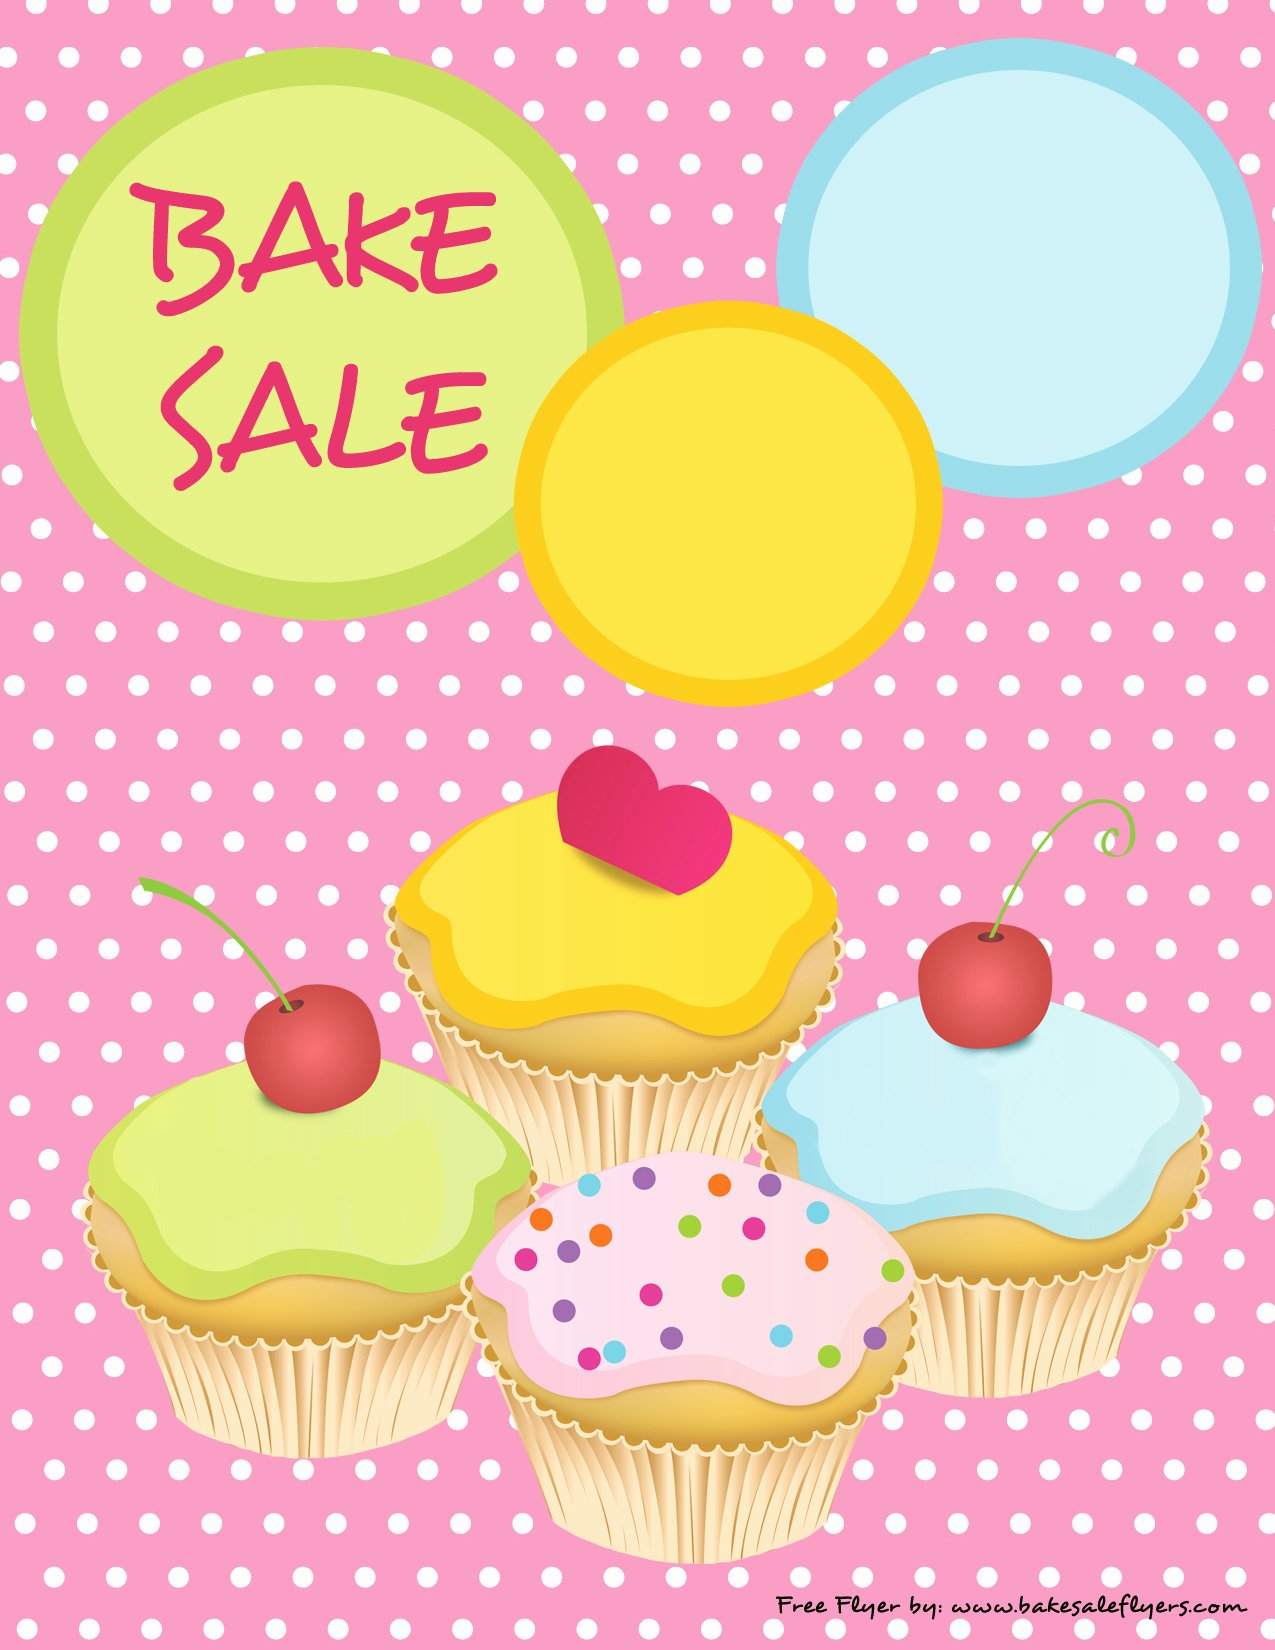 Free Printable Bake Sale Flyers Inspirational Printable Bake Sale Flyer – Cute Pink with Cupcakes